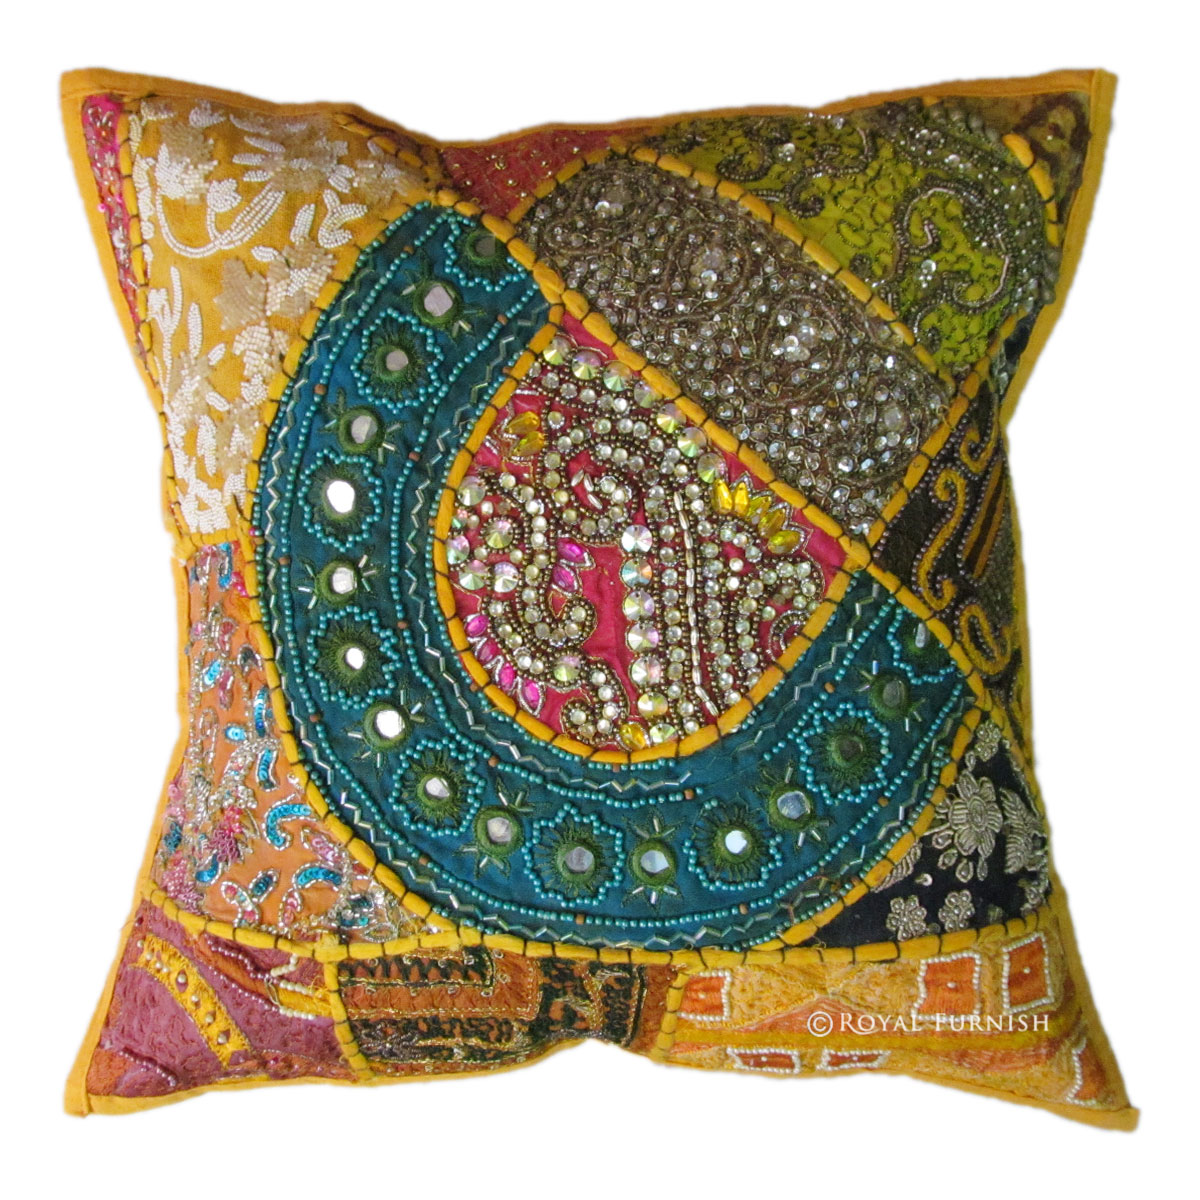 Yellow Embroidered Throw Pillows : Yellow Unique Vintage Heavy Beaded & Embroidered Cotton Throw Pillow Case Sham - RoyalFurnish.com